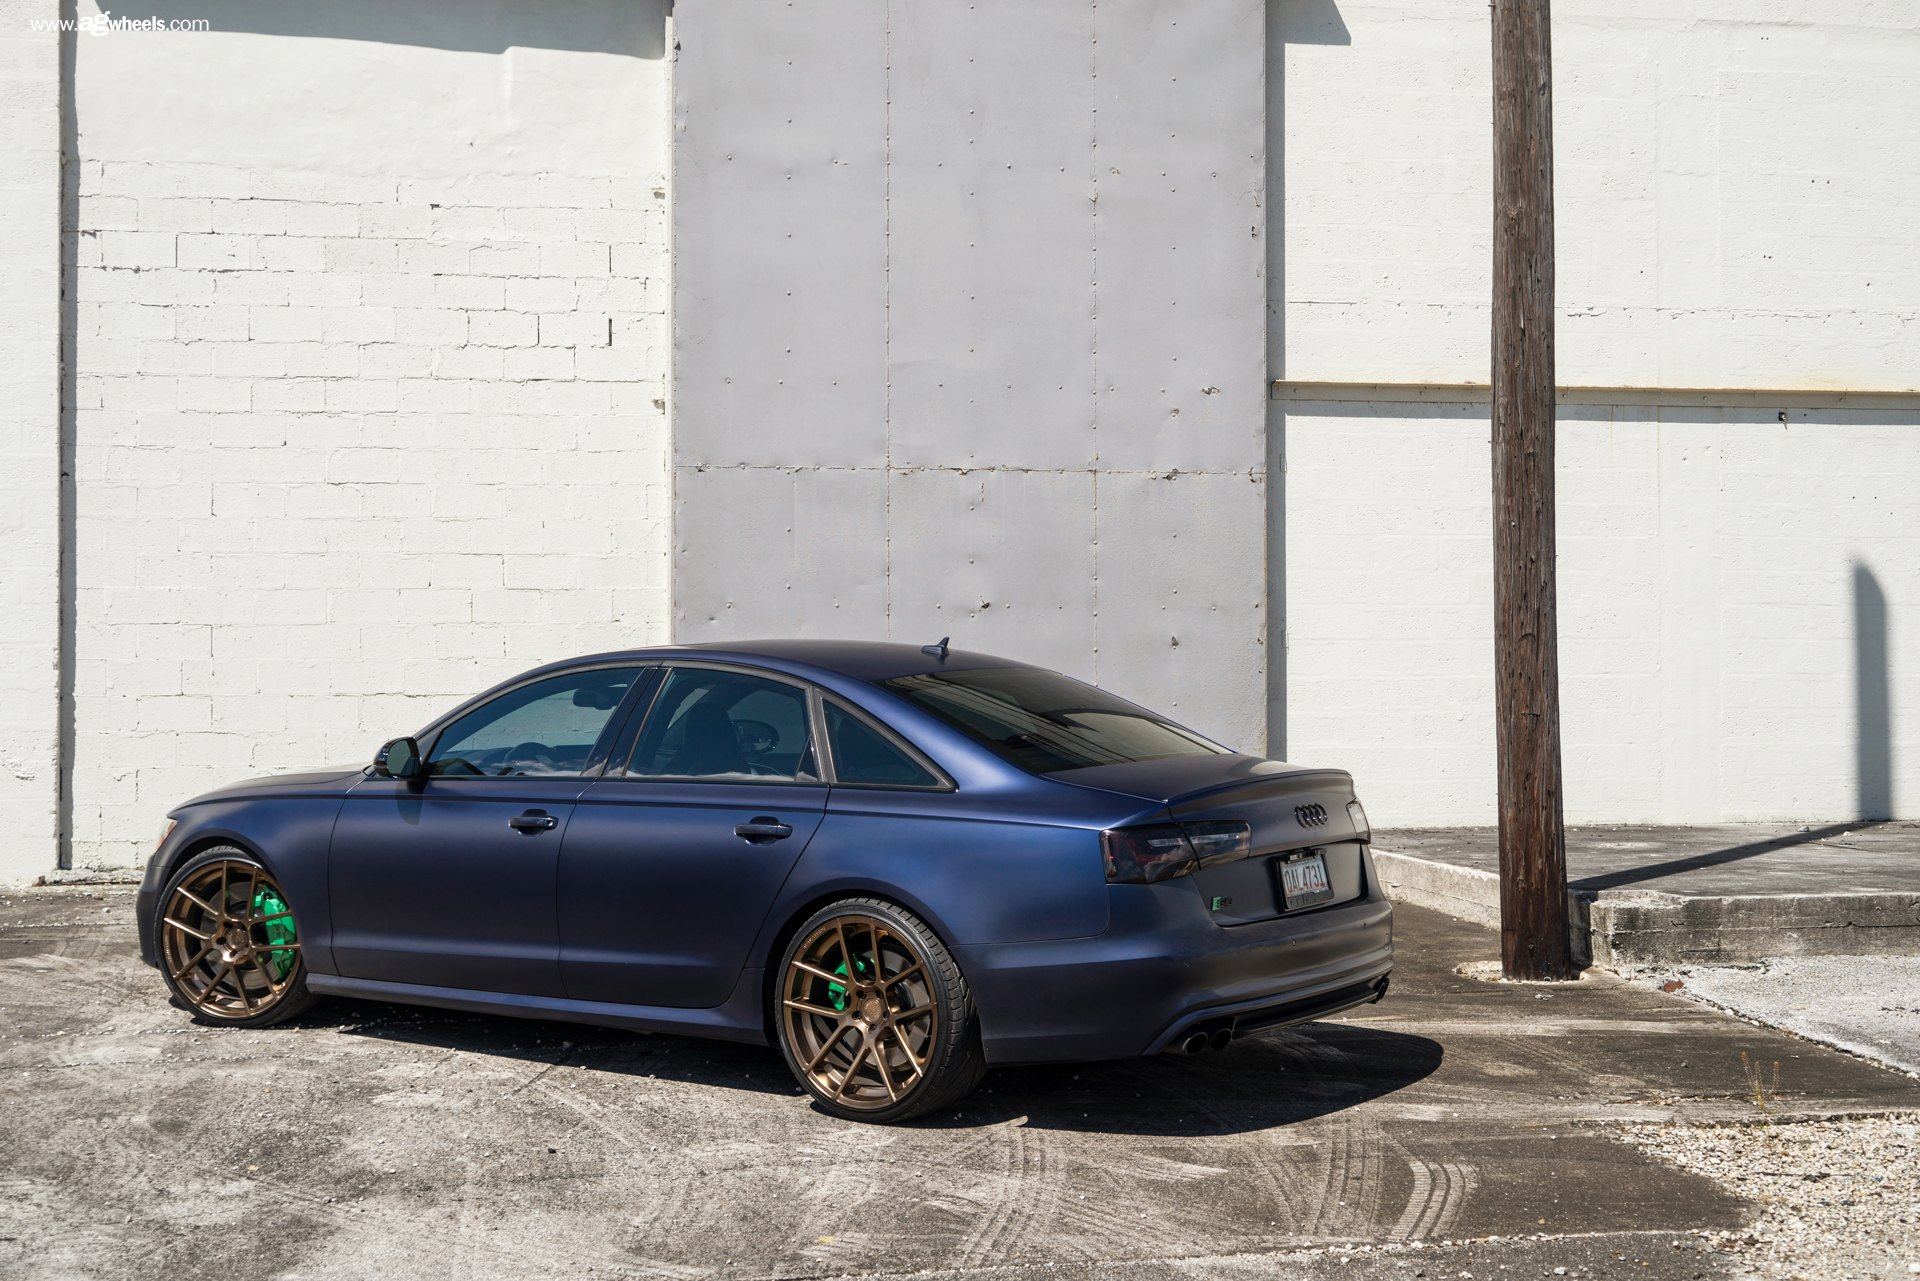 audi s6 with matte blue custom paint on classy rims by avant garde gallery. Black Bedroom Furniture Sets. Home Design Ideas